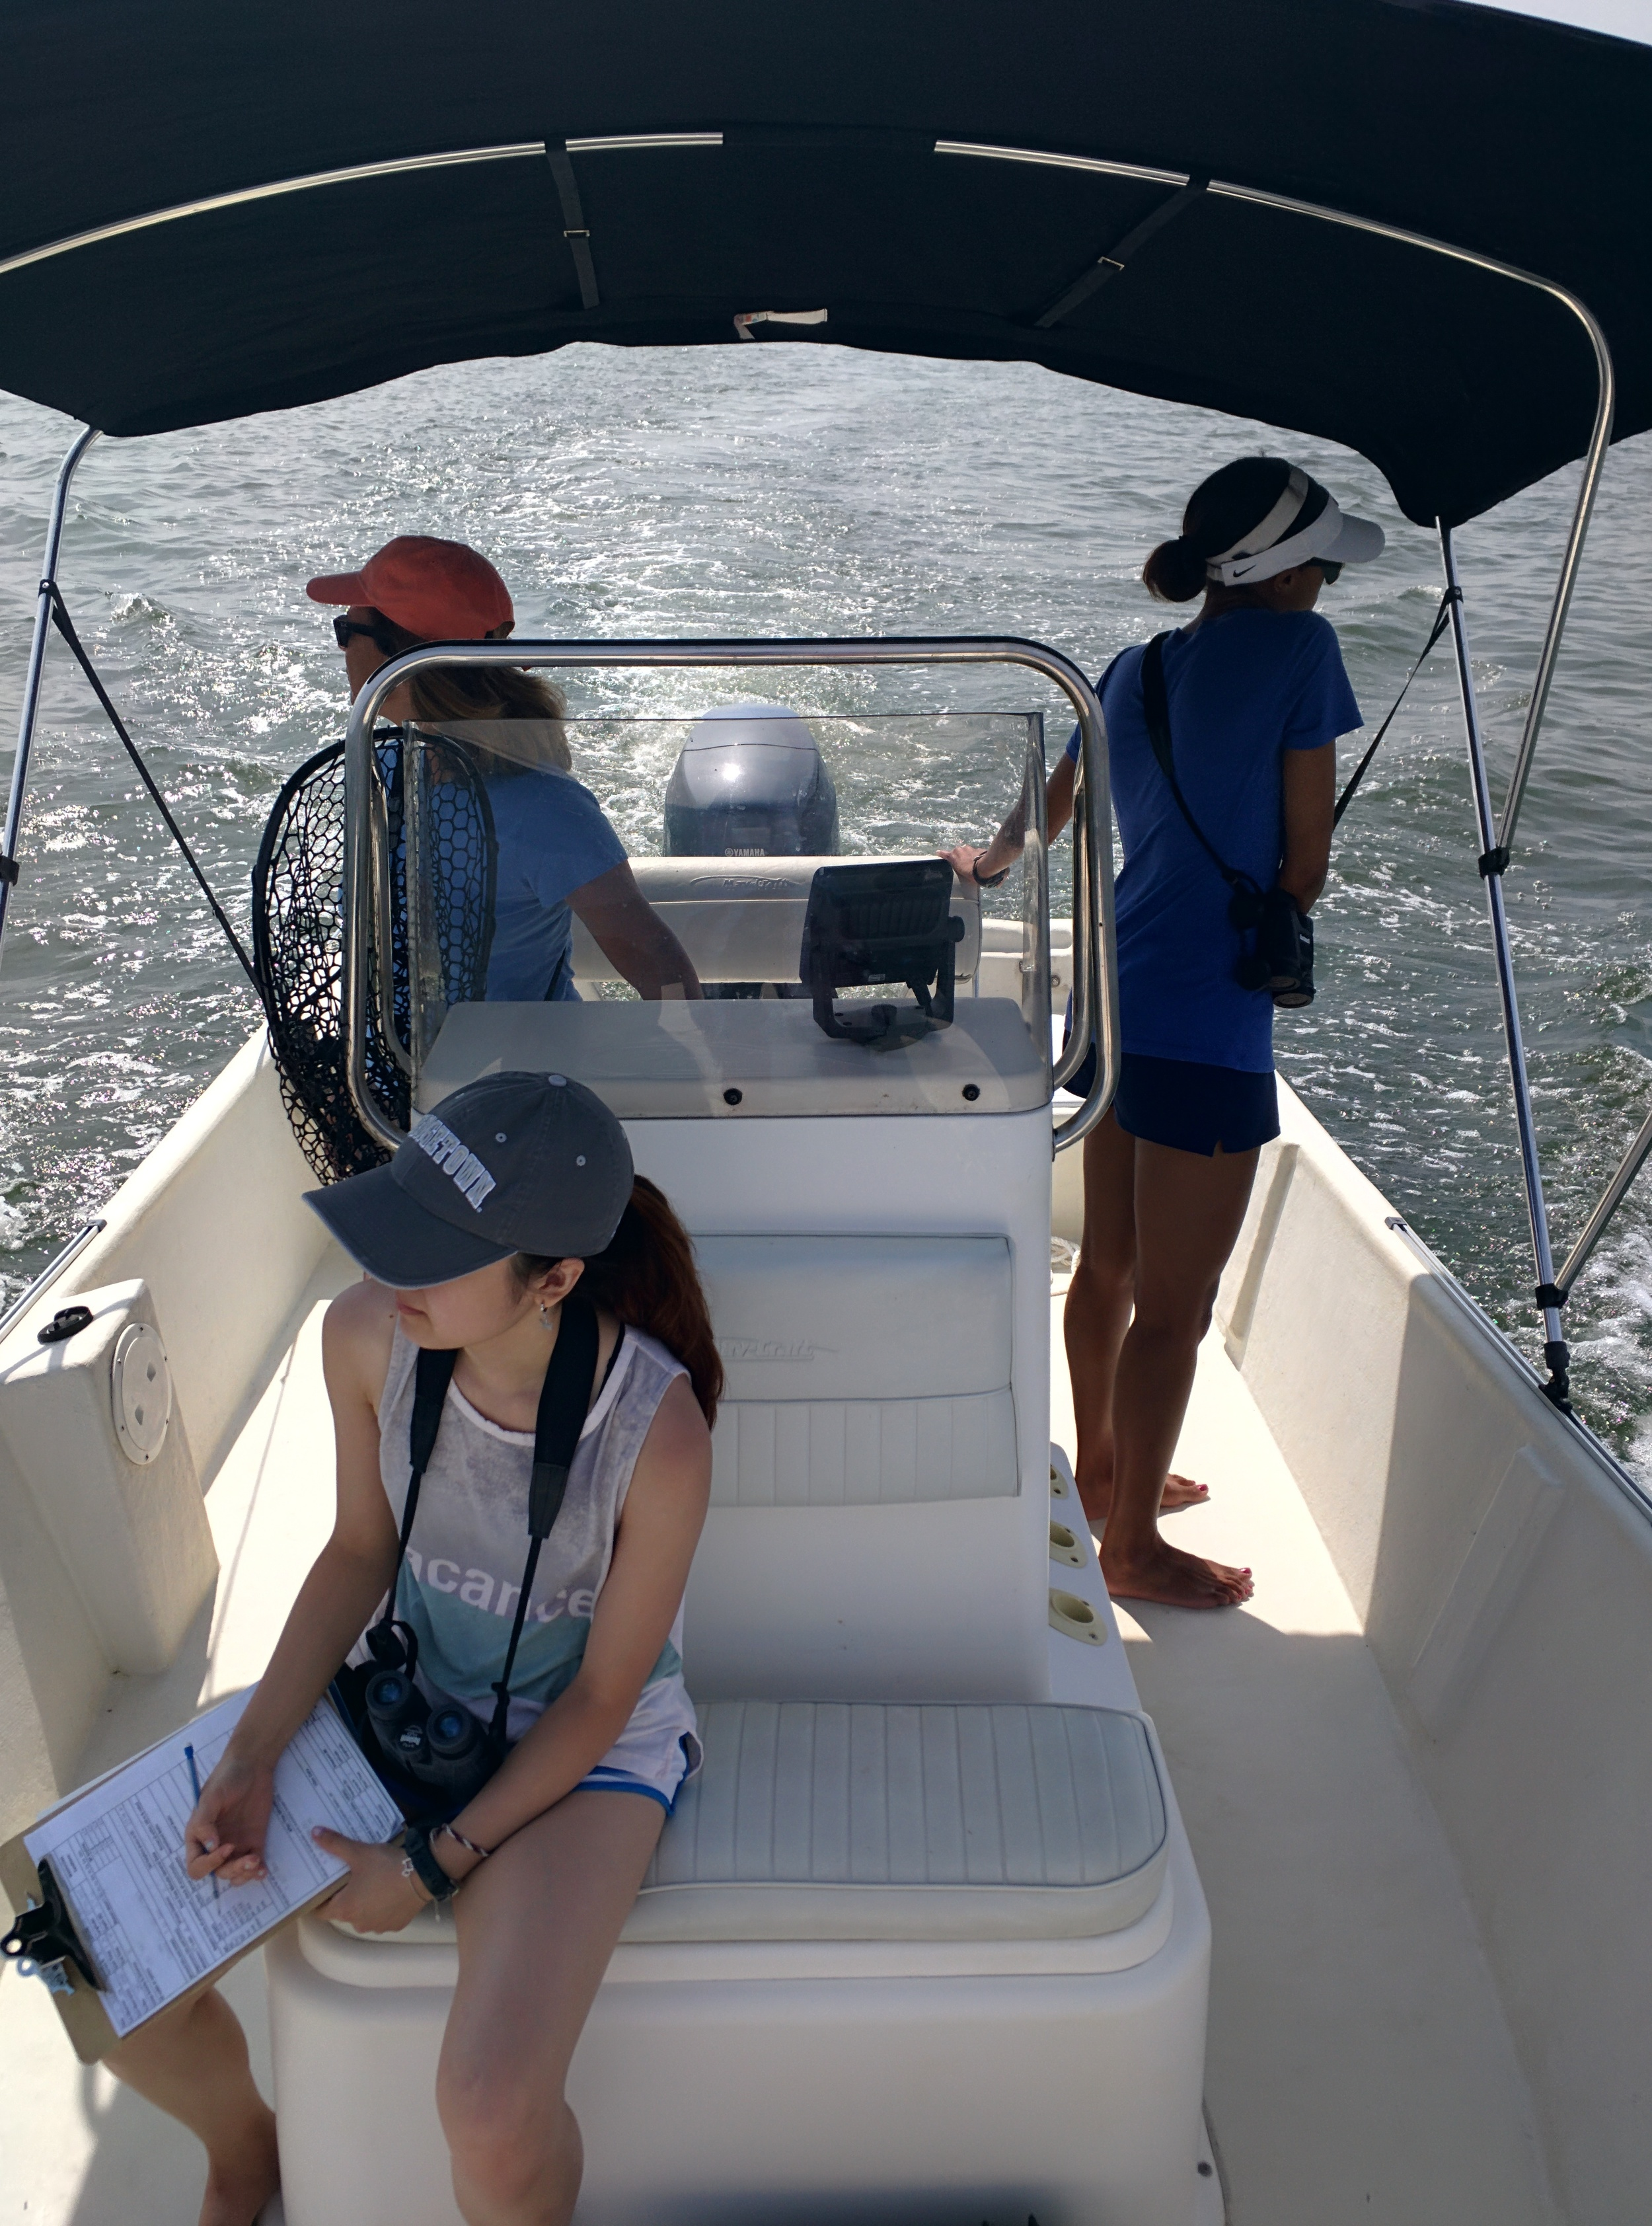 Kate Jin, Dr. Janet Mann, and Desiarae Cambrelen collecting data aboard Ahoya. This was Kate's first day out on the water learning to collect data for her synchrony project!